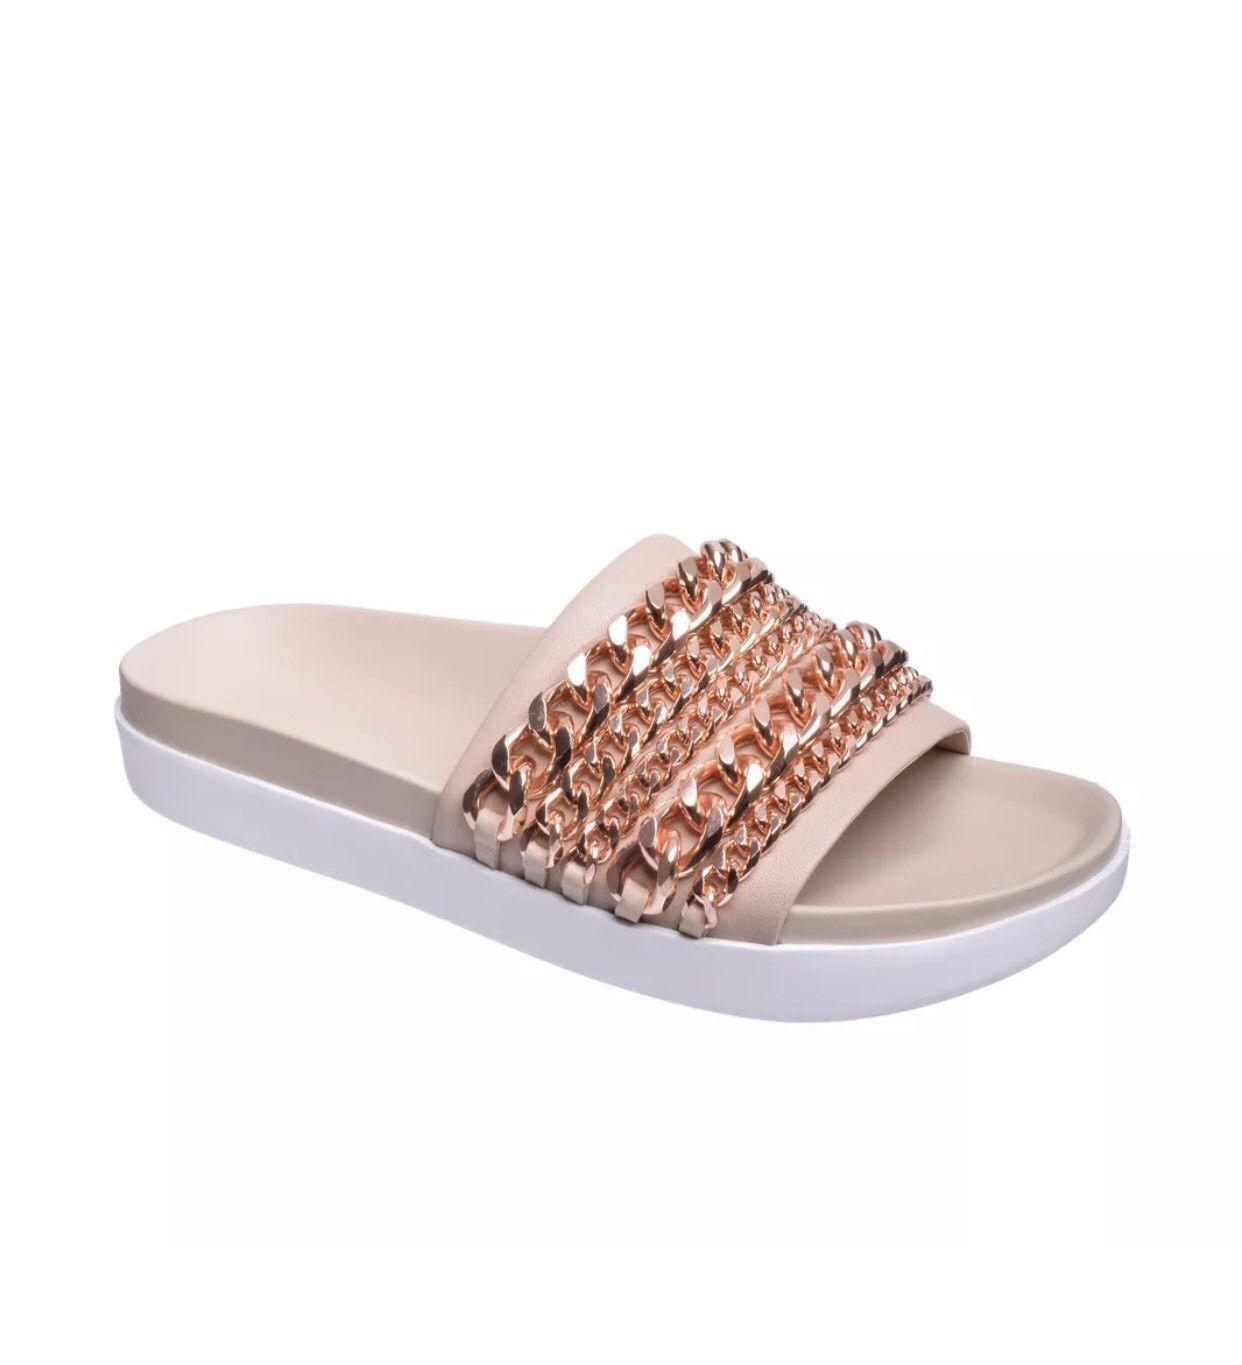 Kendall + Kylie Sandal Shiloh Ivory Pool Slide Size 8 Chain Embellished Leather